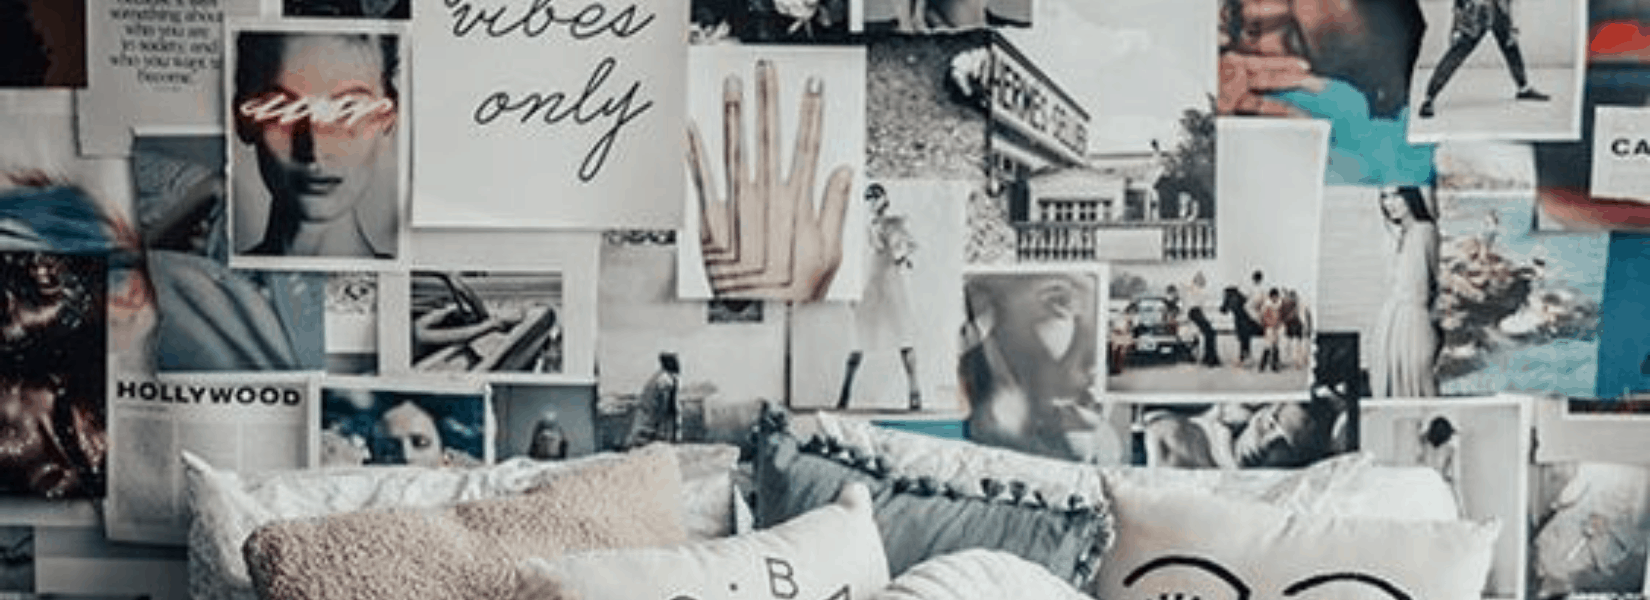 8 Cute Dorm Room Bedding Ideas You Need To Copy